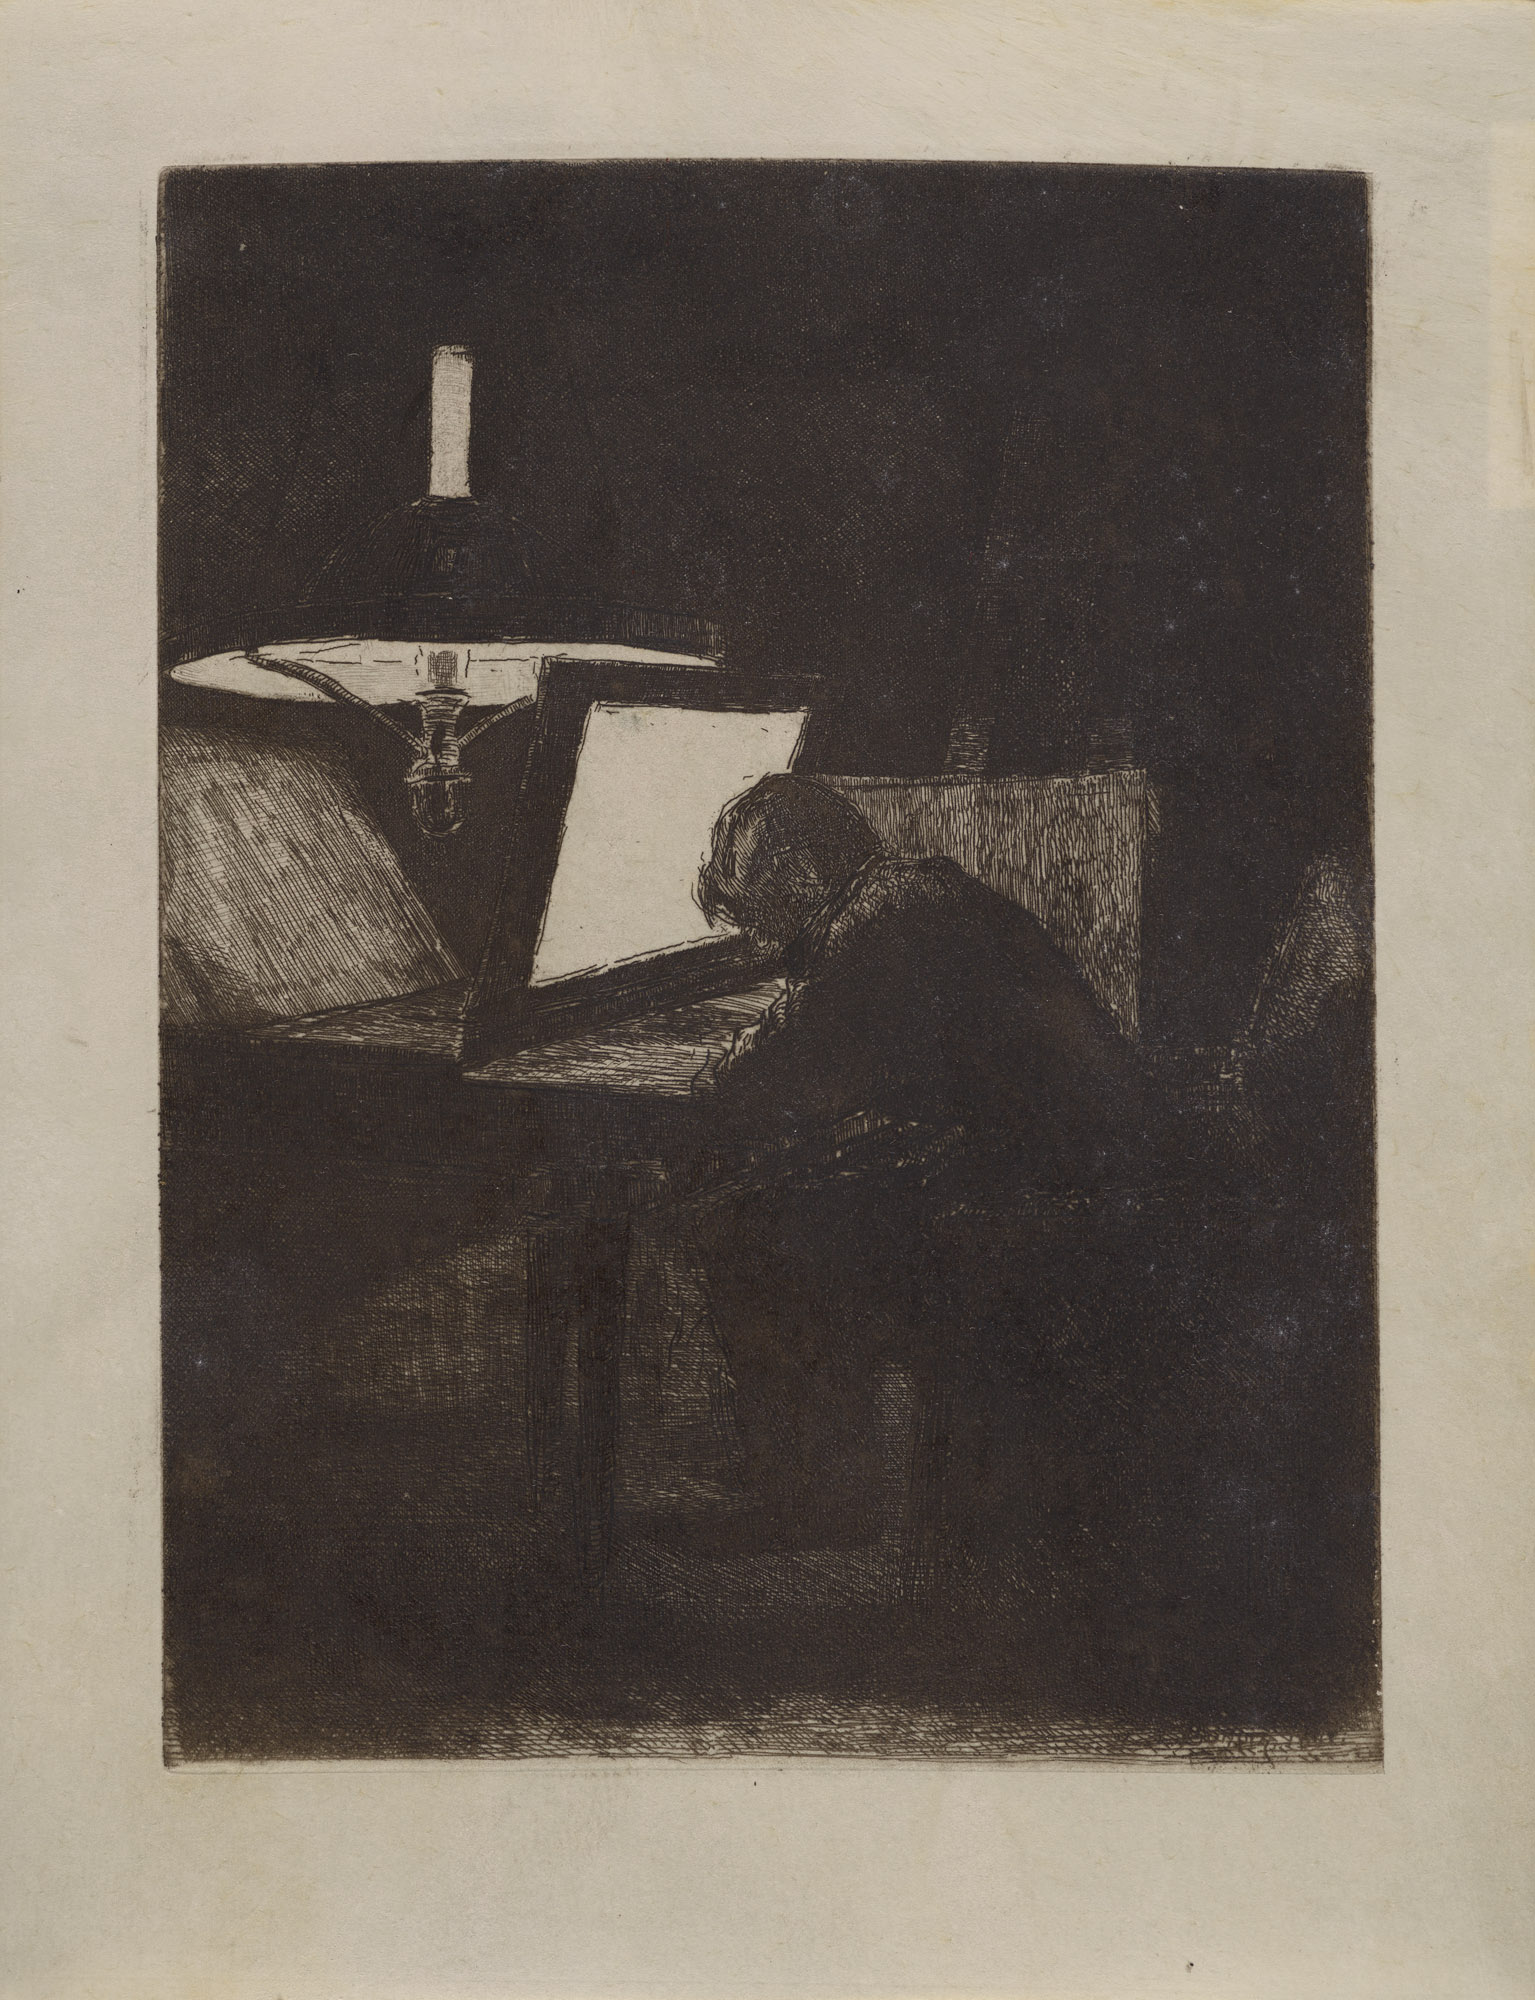 Credence Qui Se Colle altered states: etching in late 19th-century paris